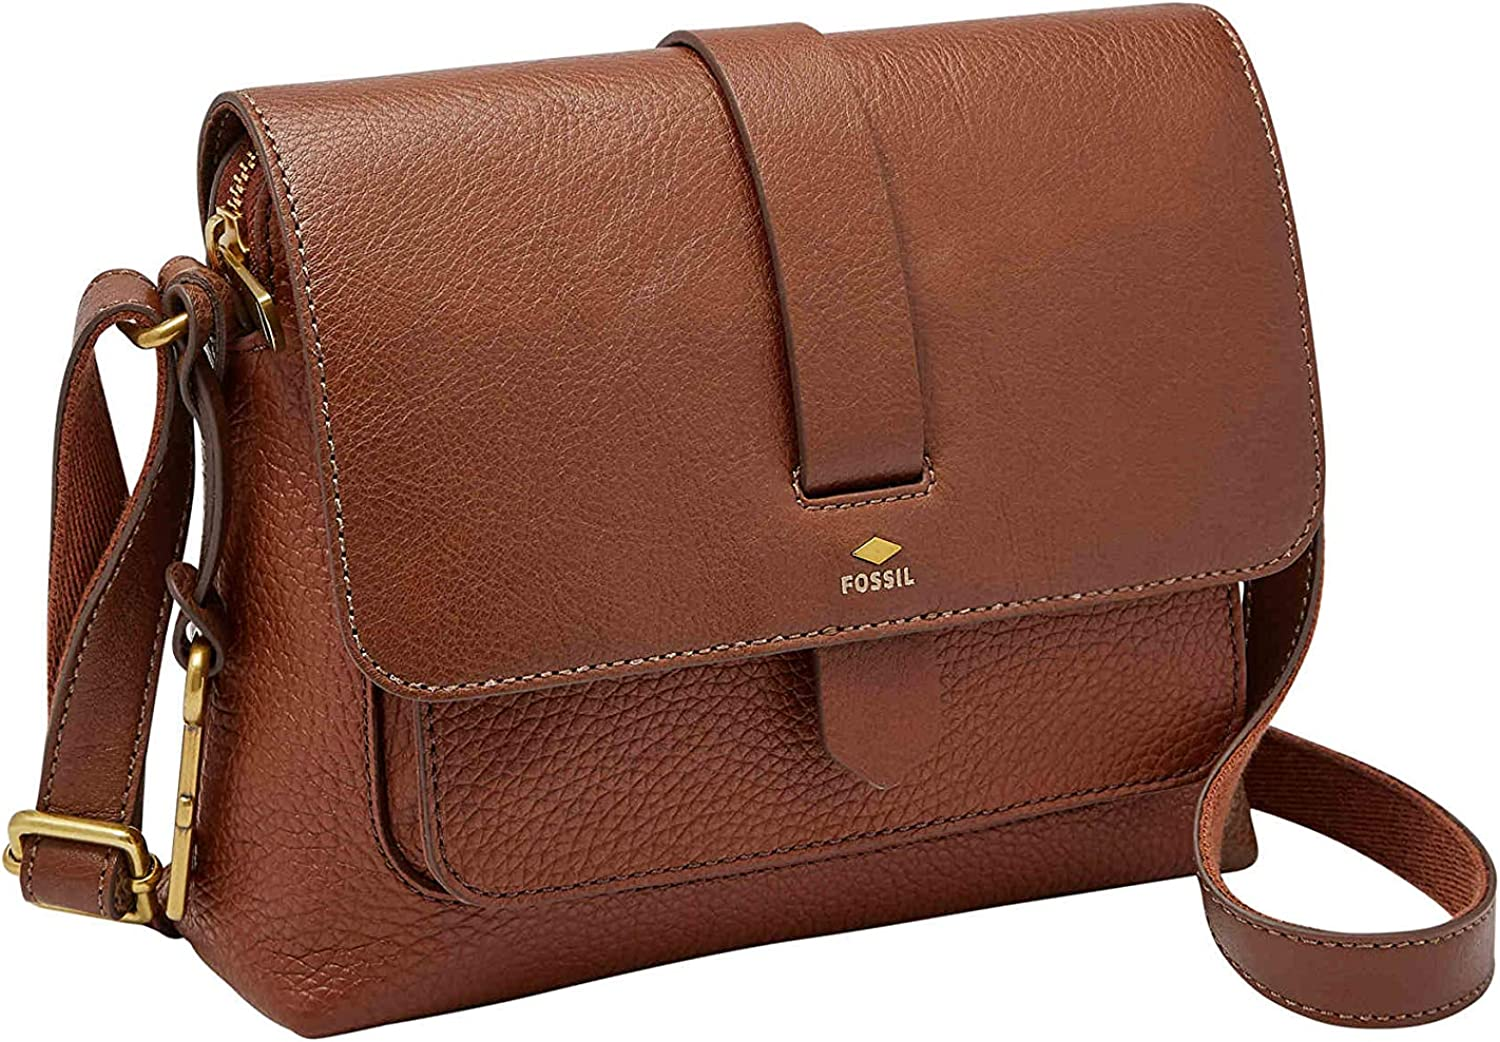 Fossil Kinley Small Crossbody Brown 2 One Size